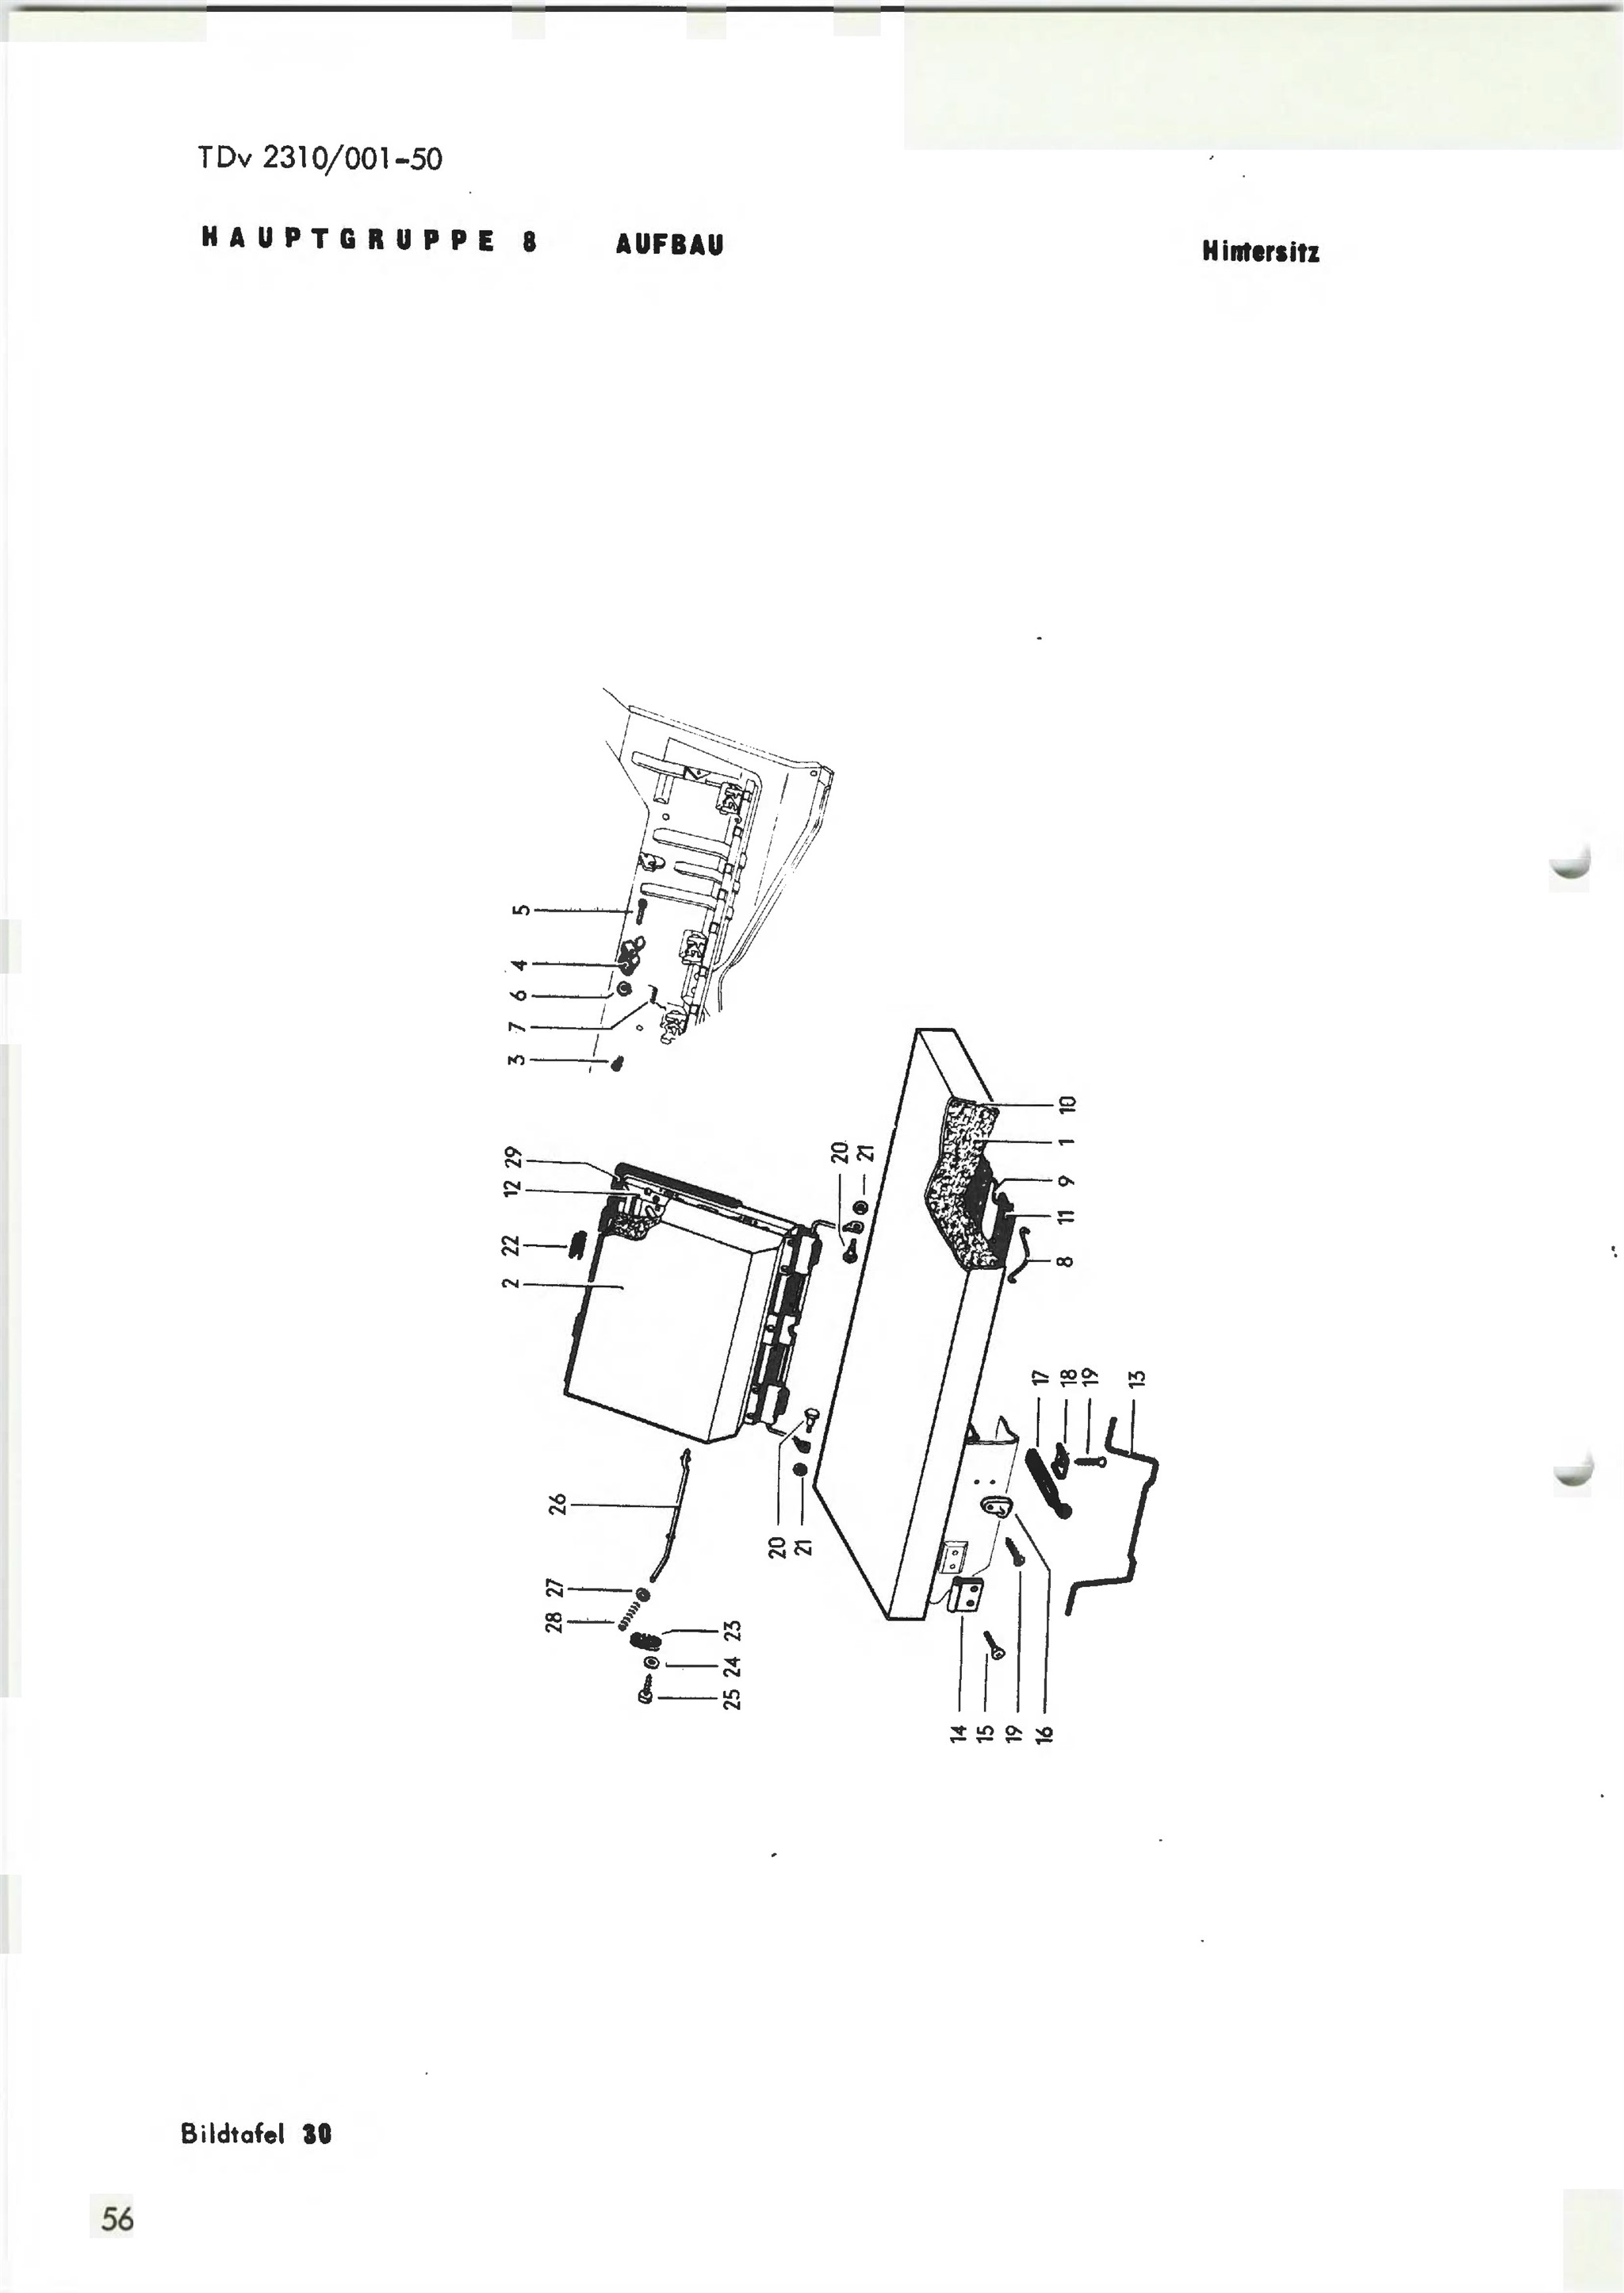 Chevy Colorado 3 5l Engine Diagram. Chevy. Auto Wiring Diagram